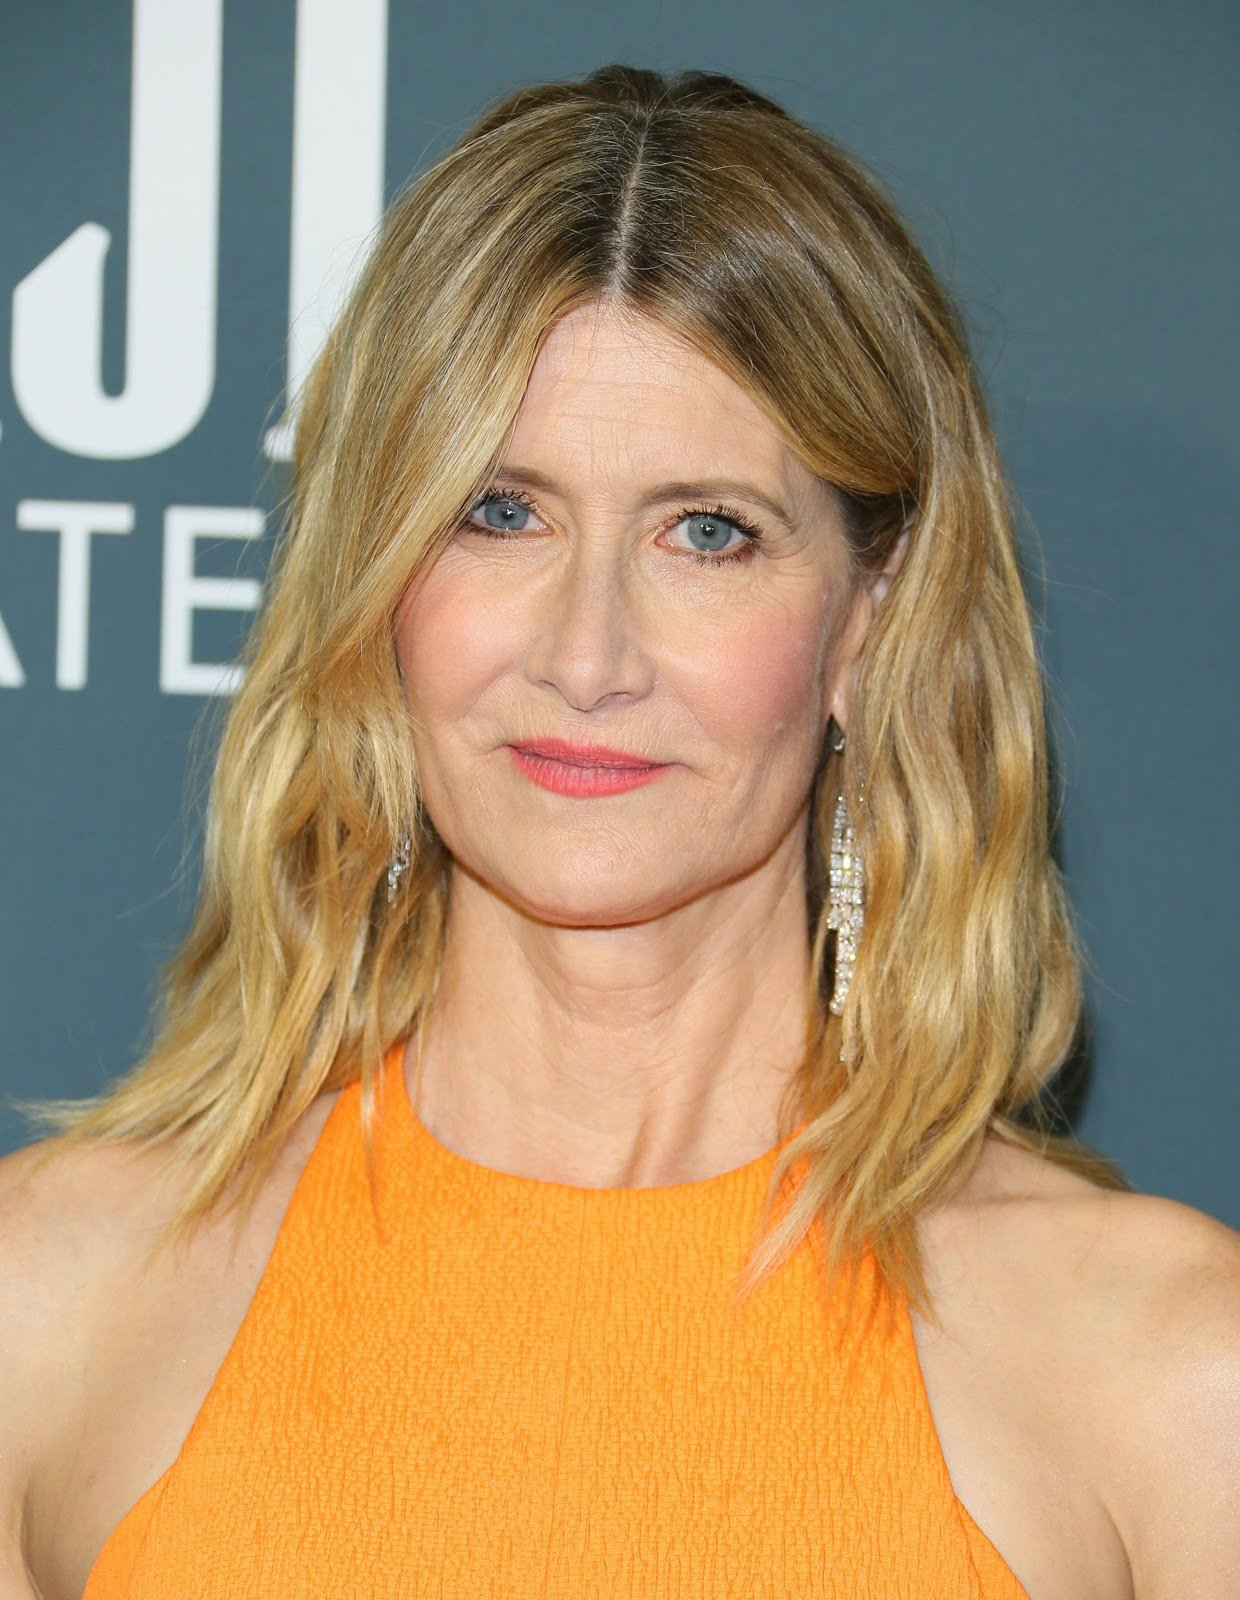 Laura Dern Red Carpet Hairstyle Critic's Choice Awards